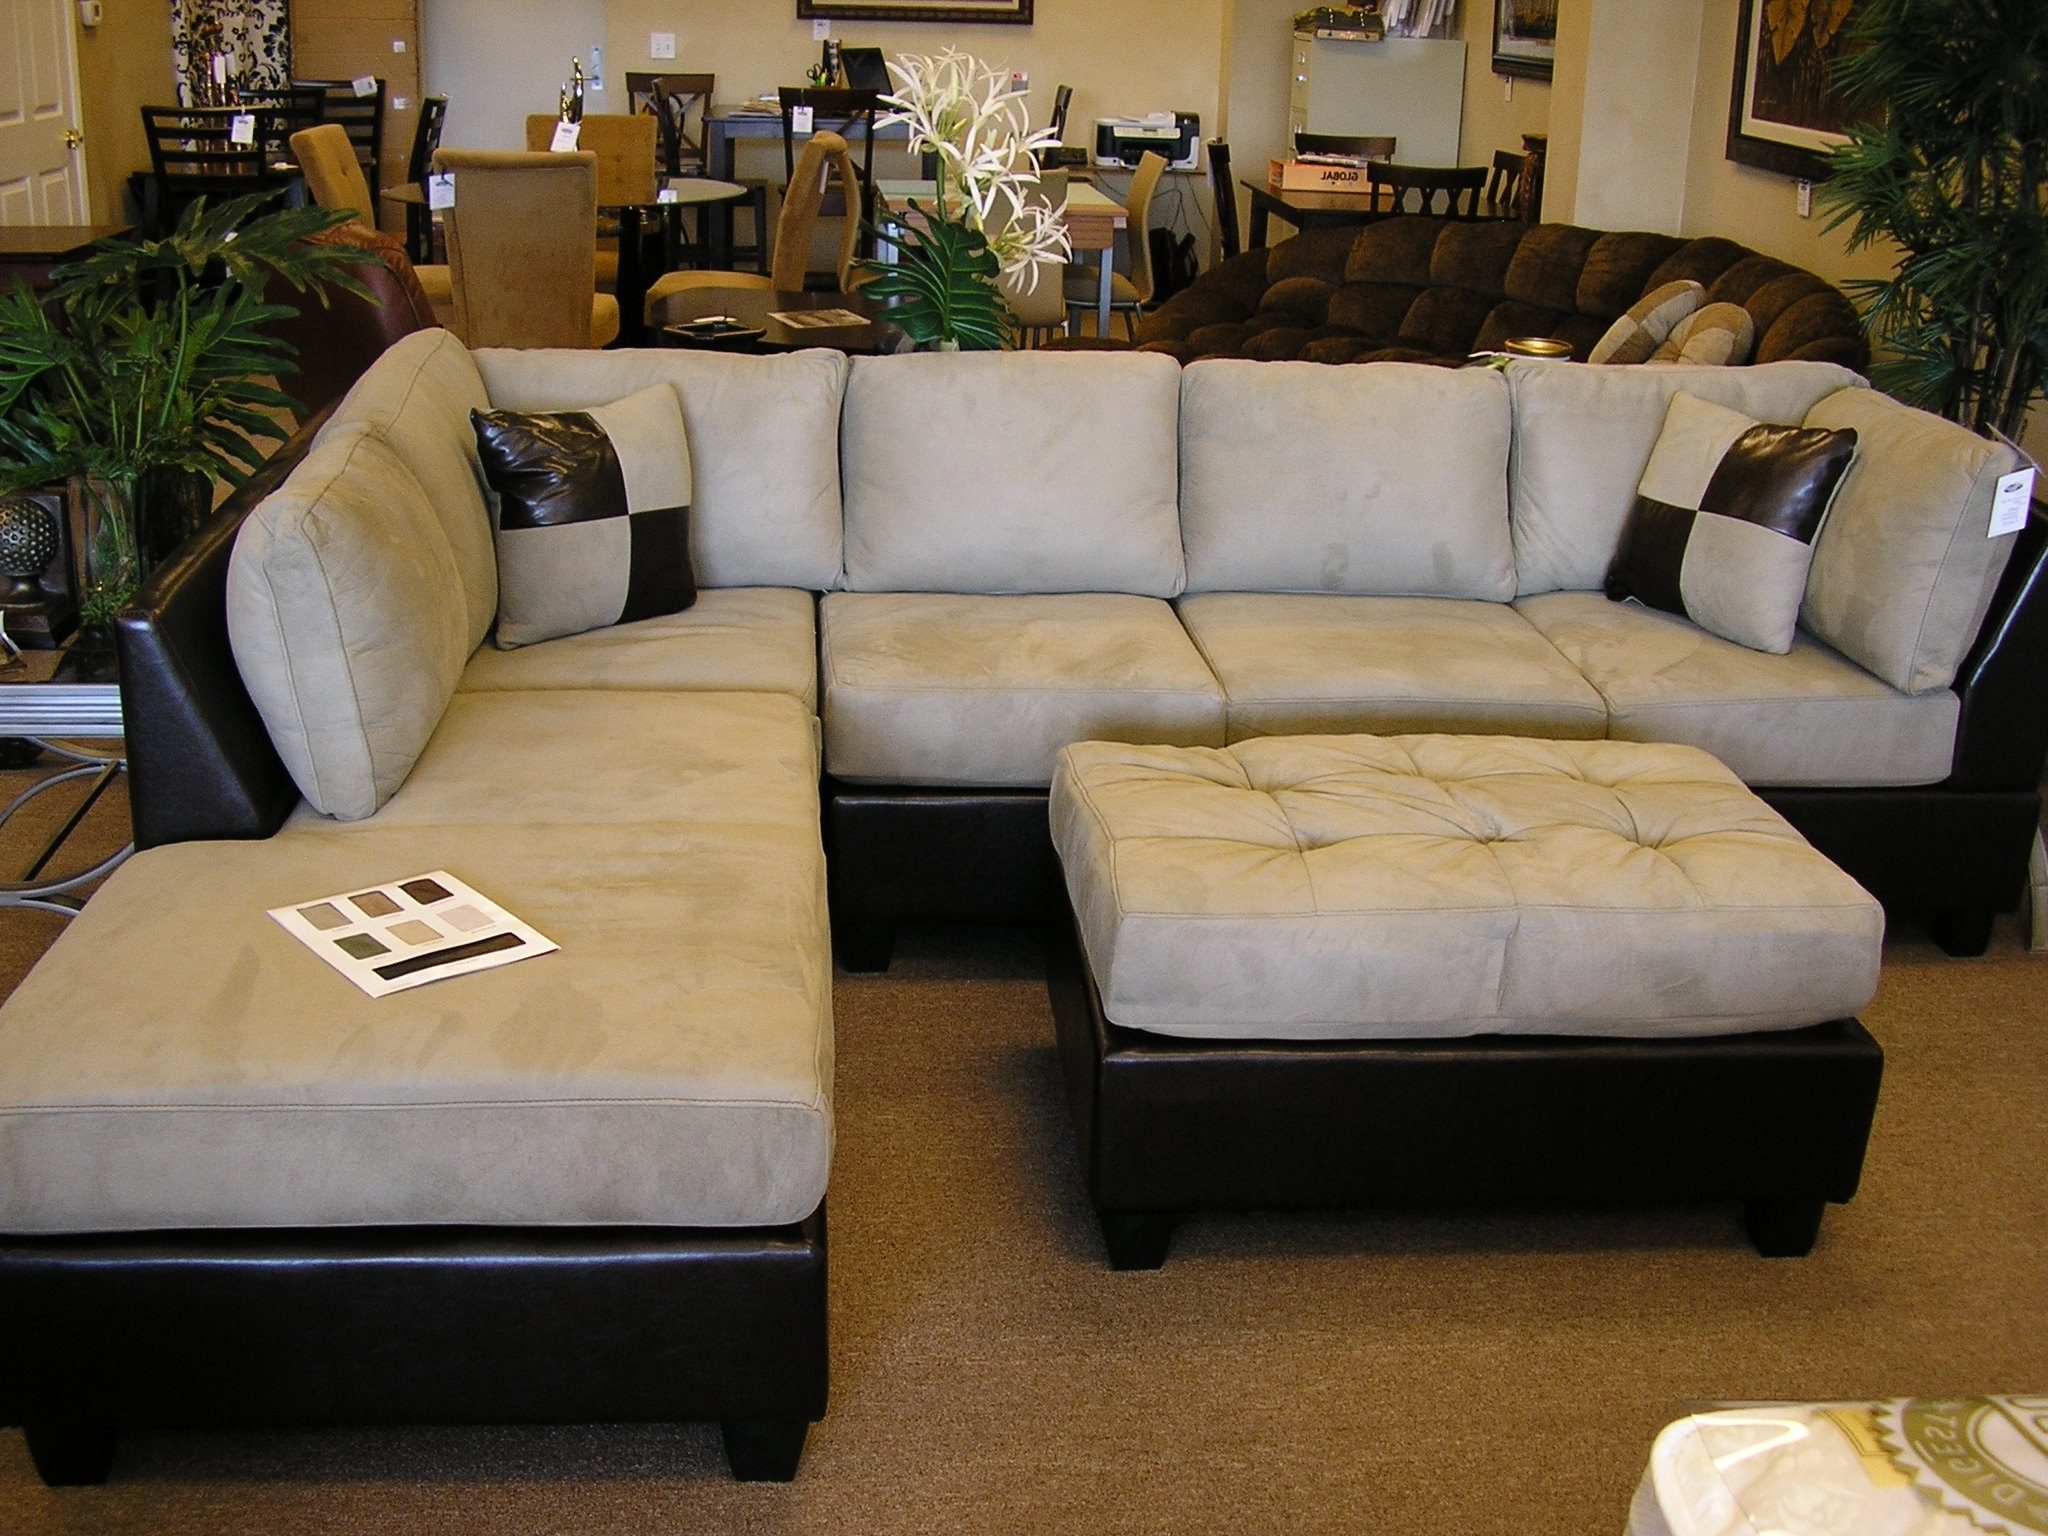 Trendy Sectional Sofas With Ottoman With Furniture : Sectional Chaise Lounge Sofa Double Along With (View 15 of 15)